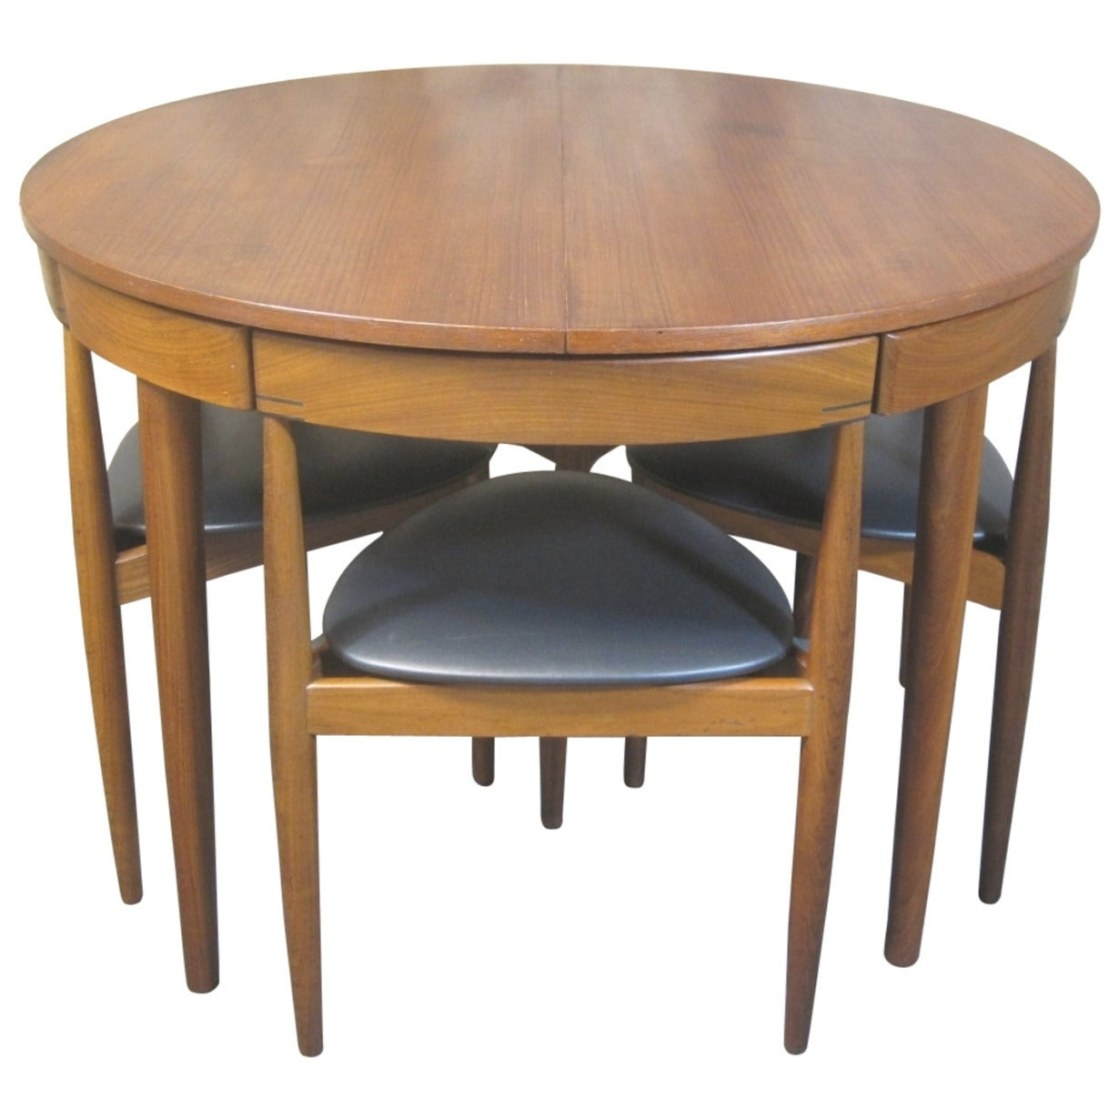 Hans Olsen For Frem Rojle Teak Dining Table And Chairs in Mid Century Dining Table